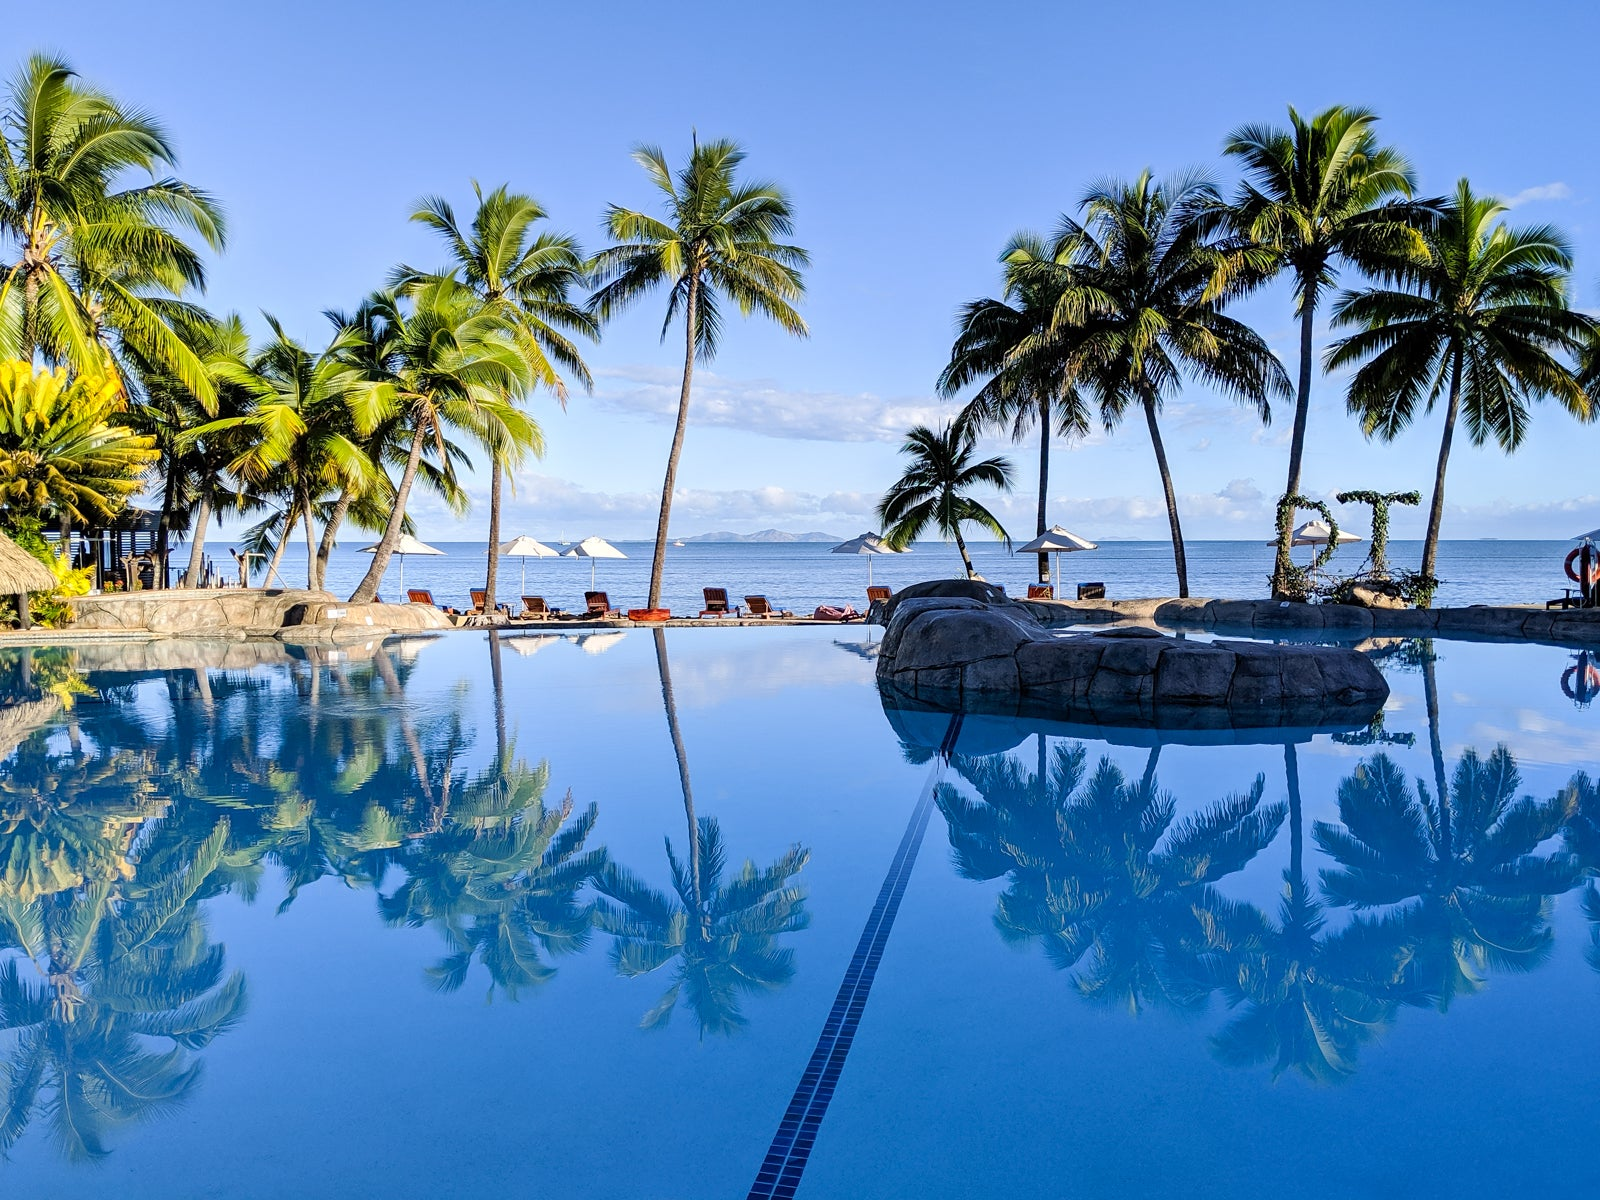 From all-inclusive resorts to 65 nights : TPG staffers reveal how they'd spend 1 million Hilton Honors points - The Points Guy